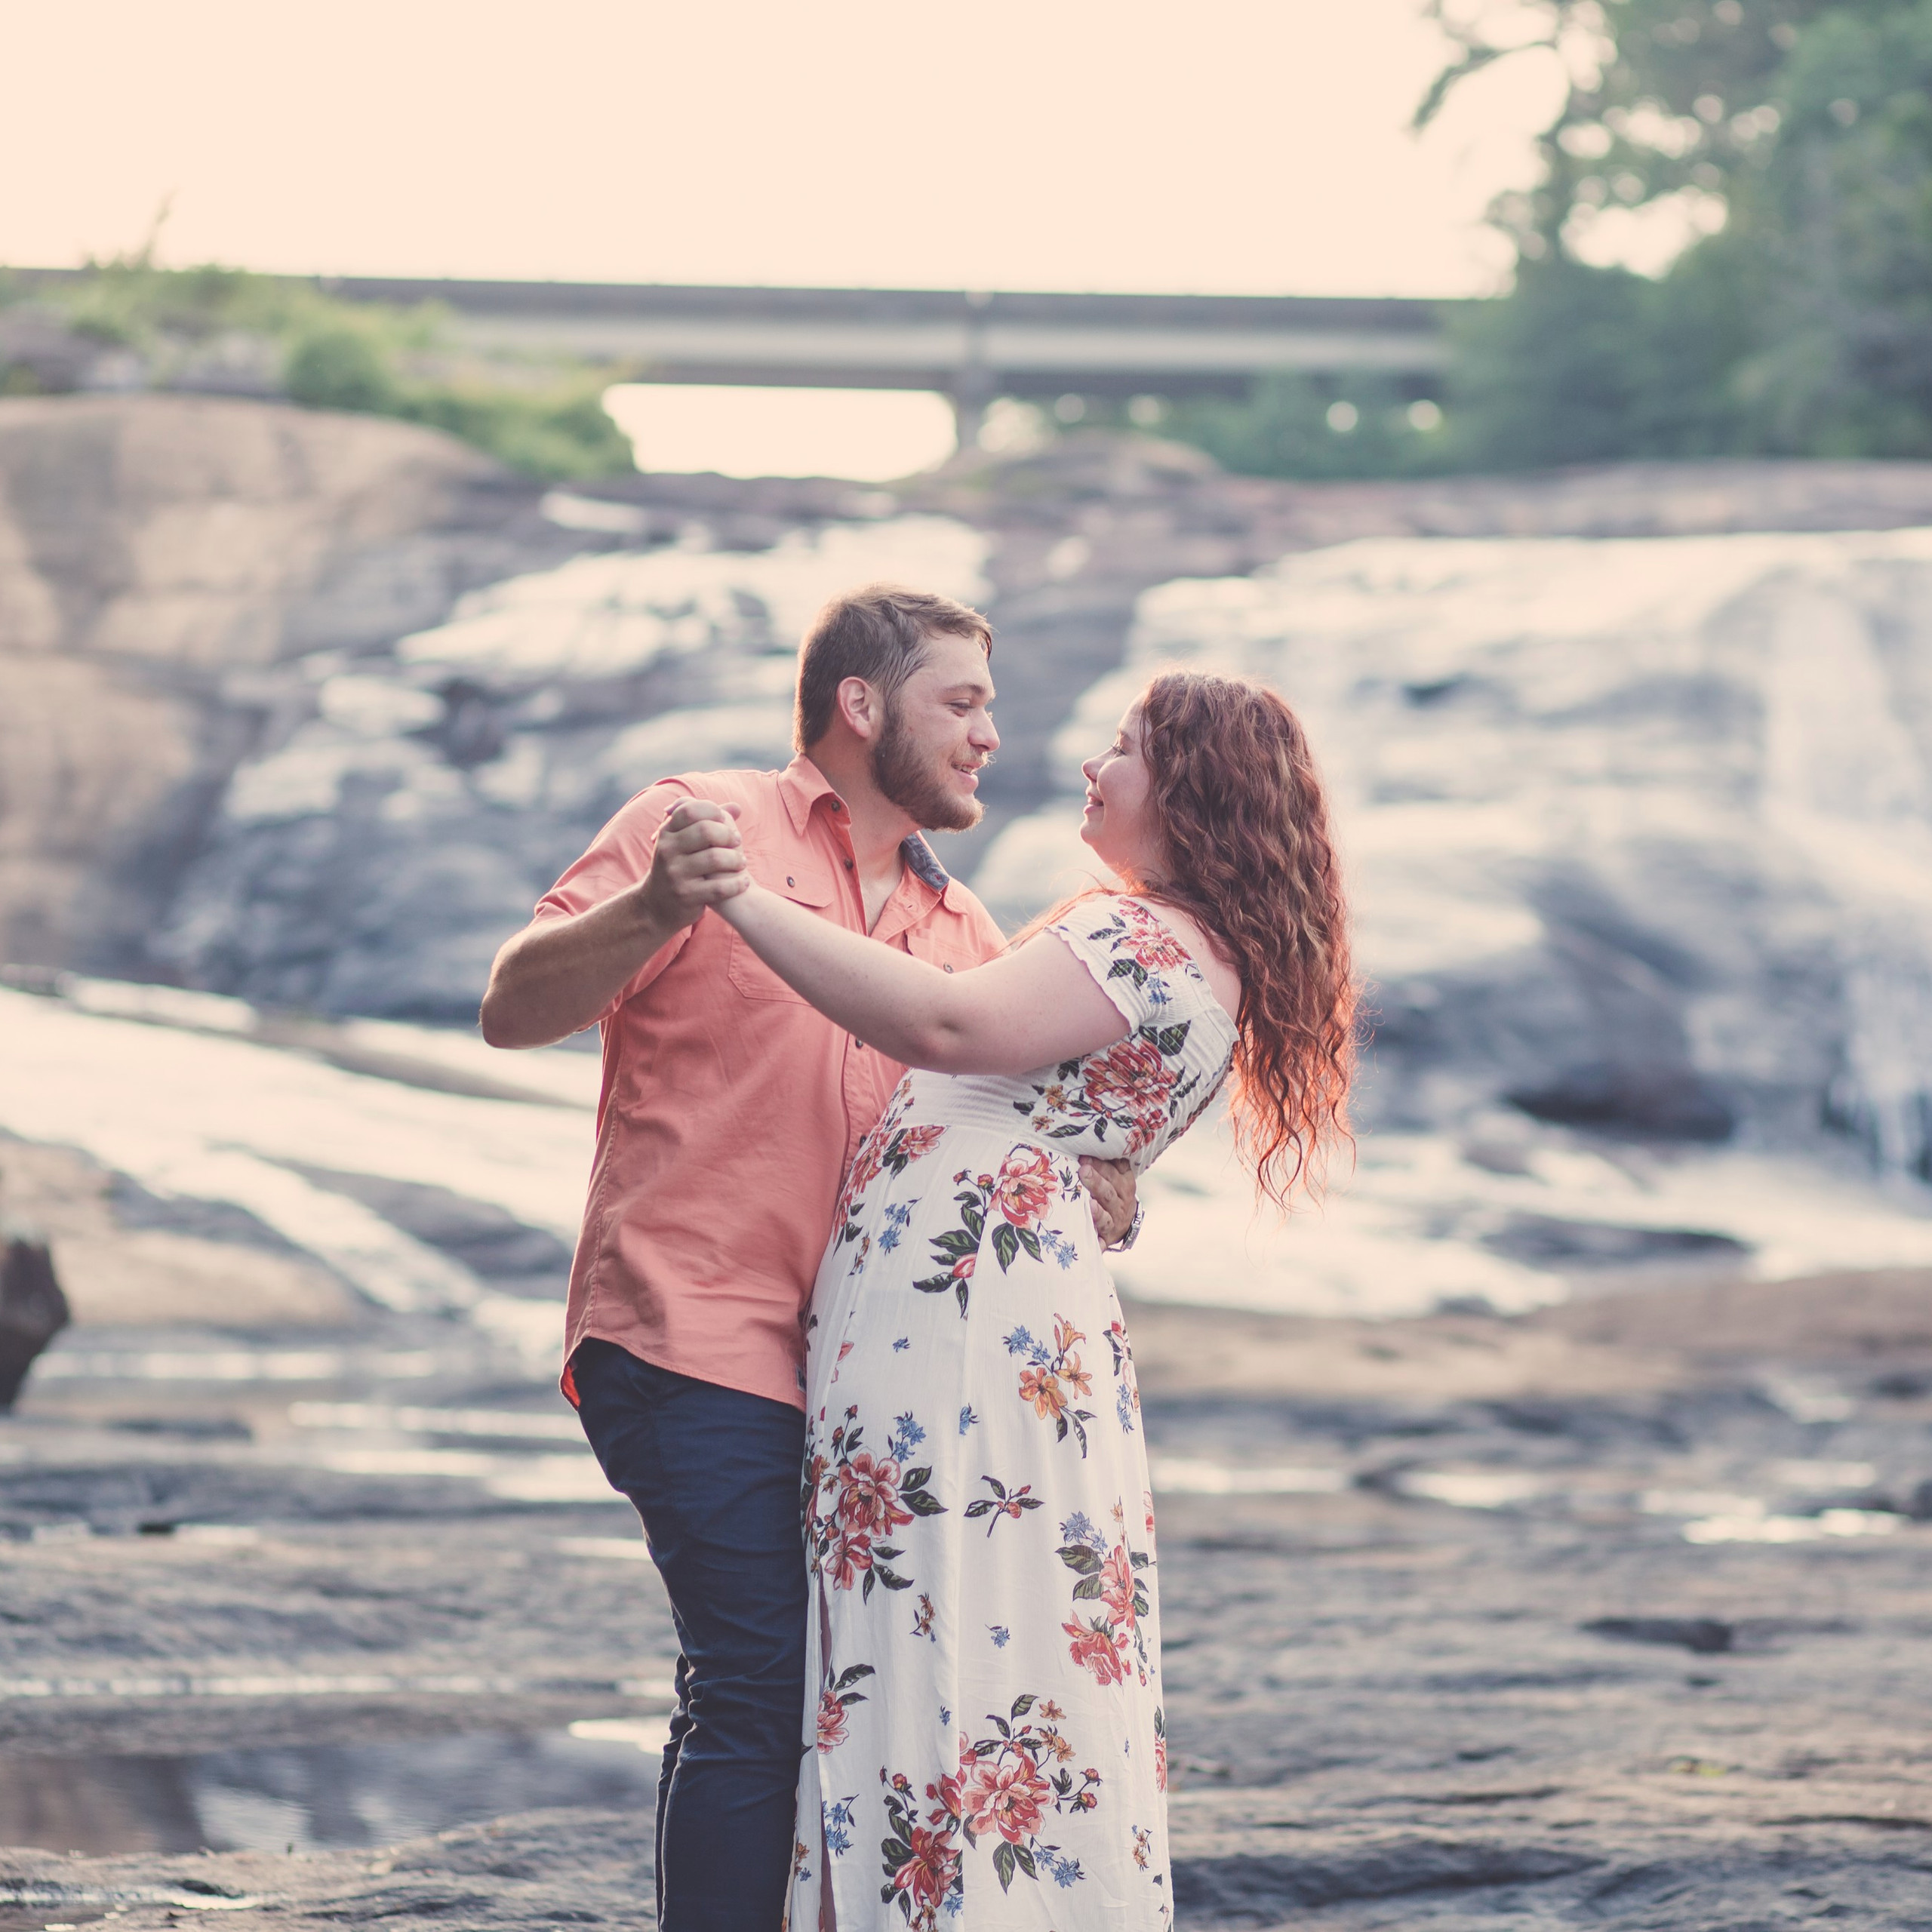 Engagement session at High Falls State Park | Macon, Georgia Wedding Photographer | Warner Robins, Georgia Wedding Photographer | Atlanta, Georgia Wedding Photographer